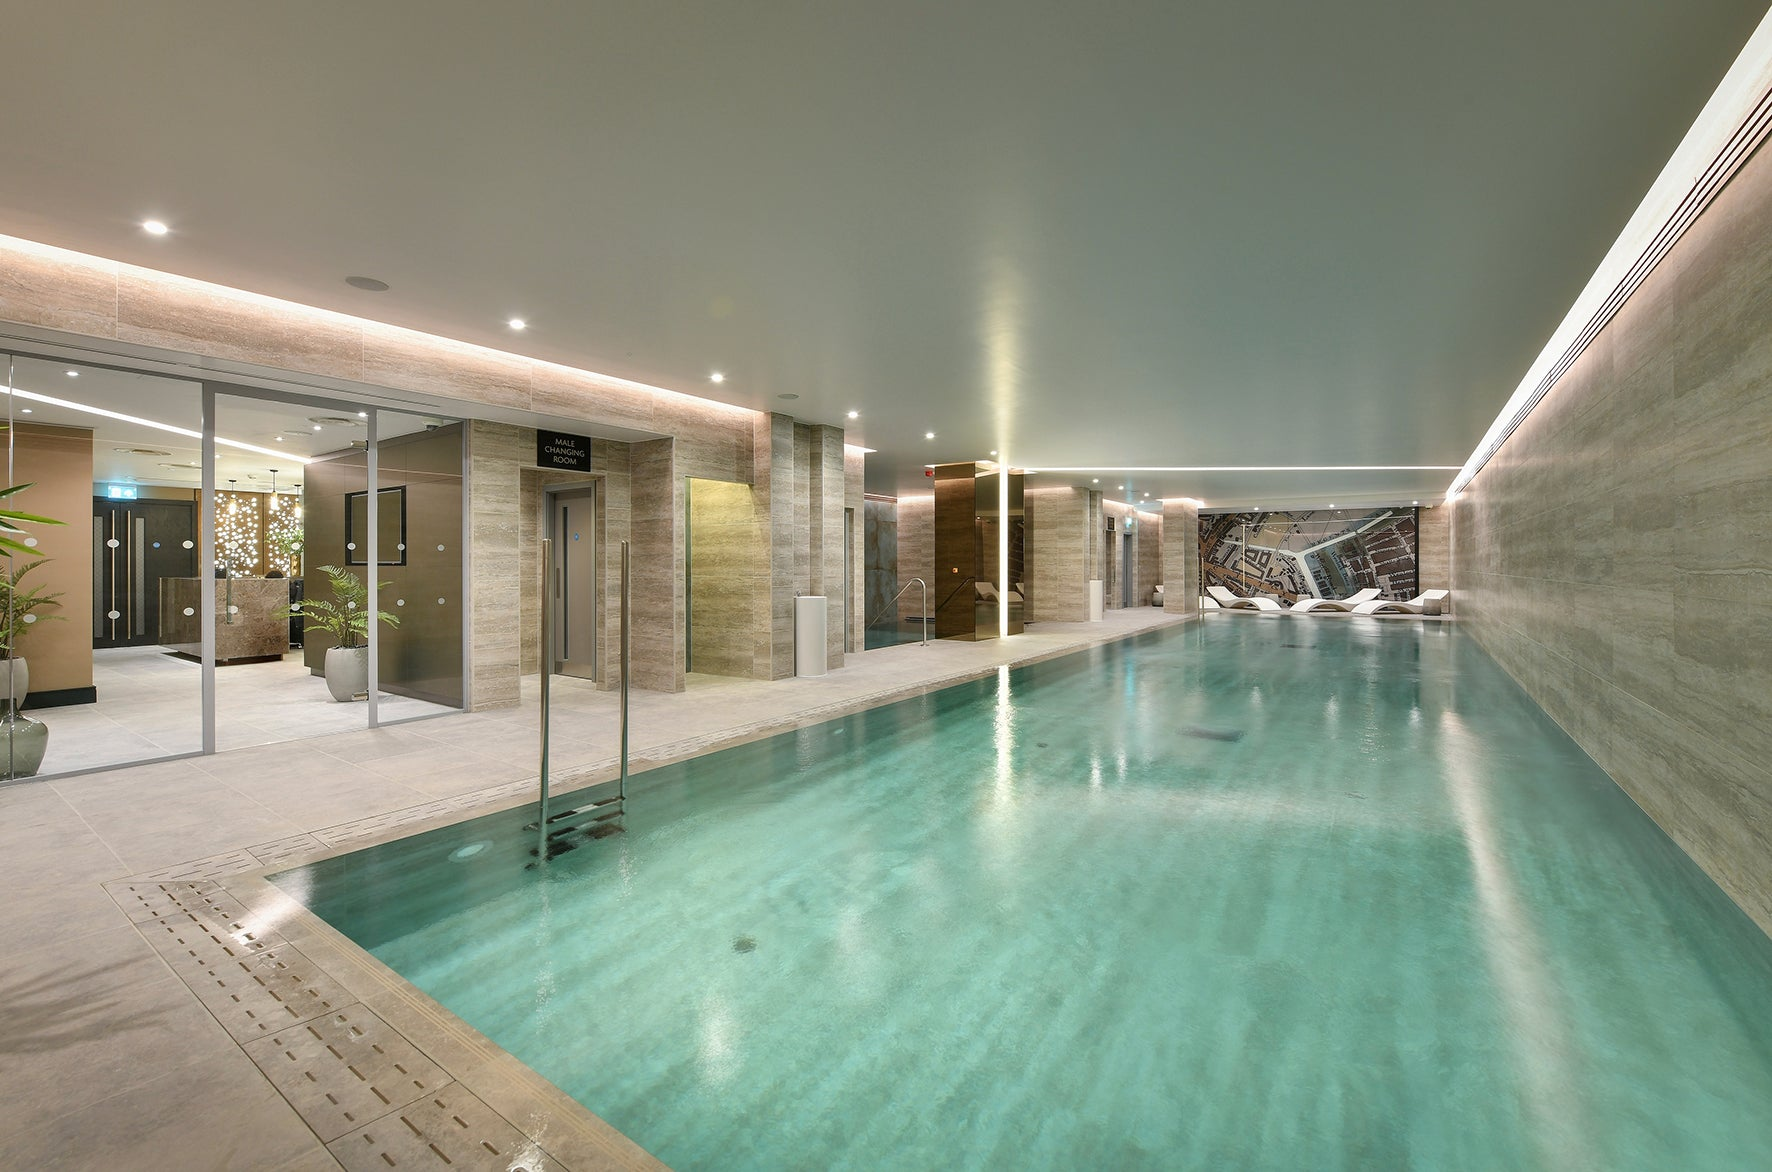 The pool, luxury apartment 250 City Road, London Valencia Tower